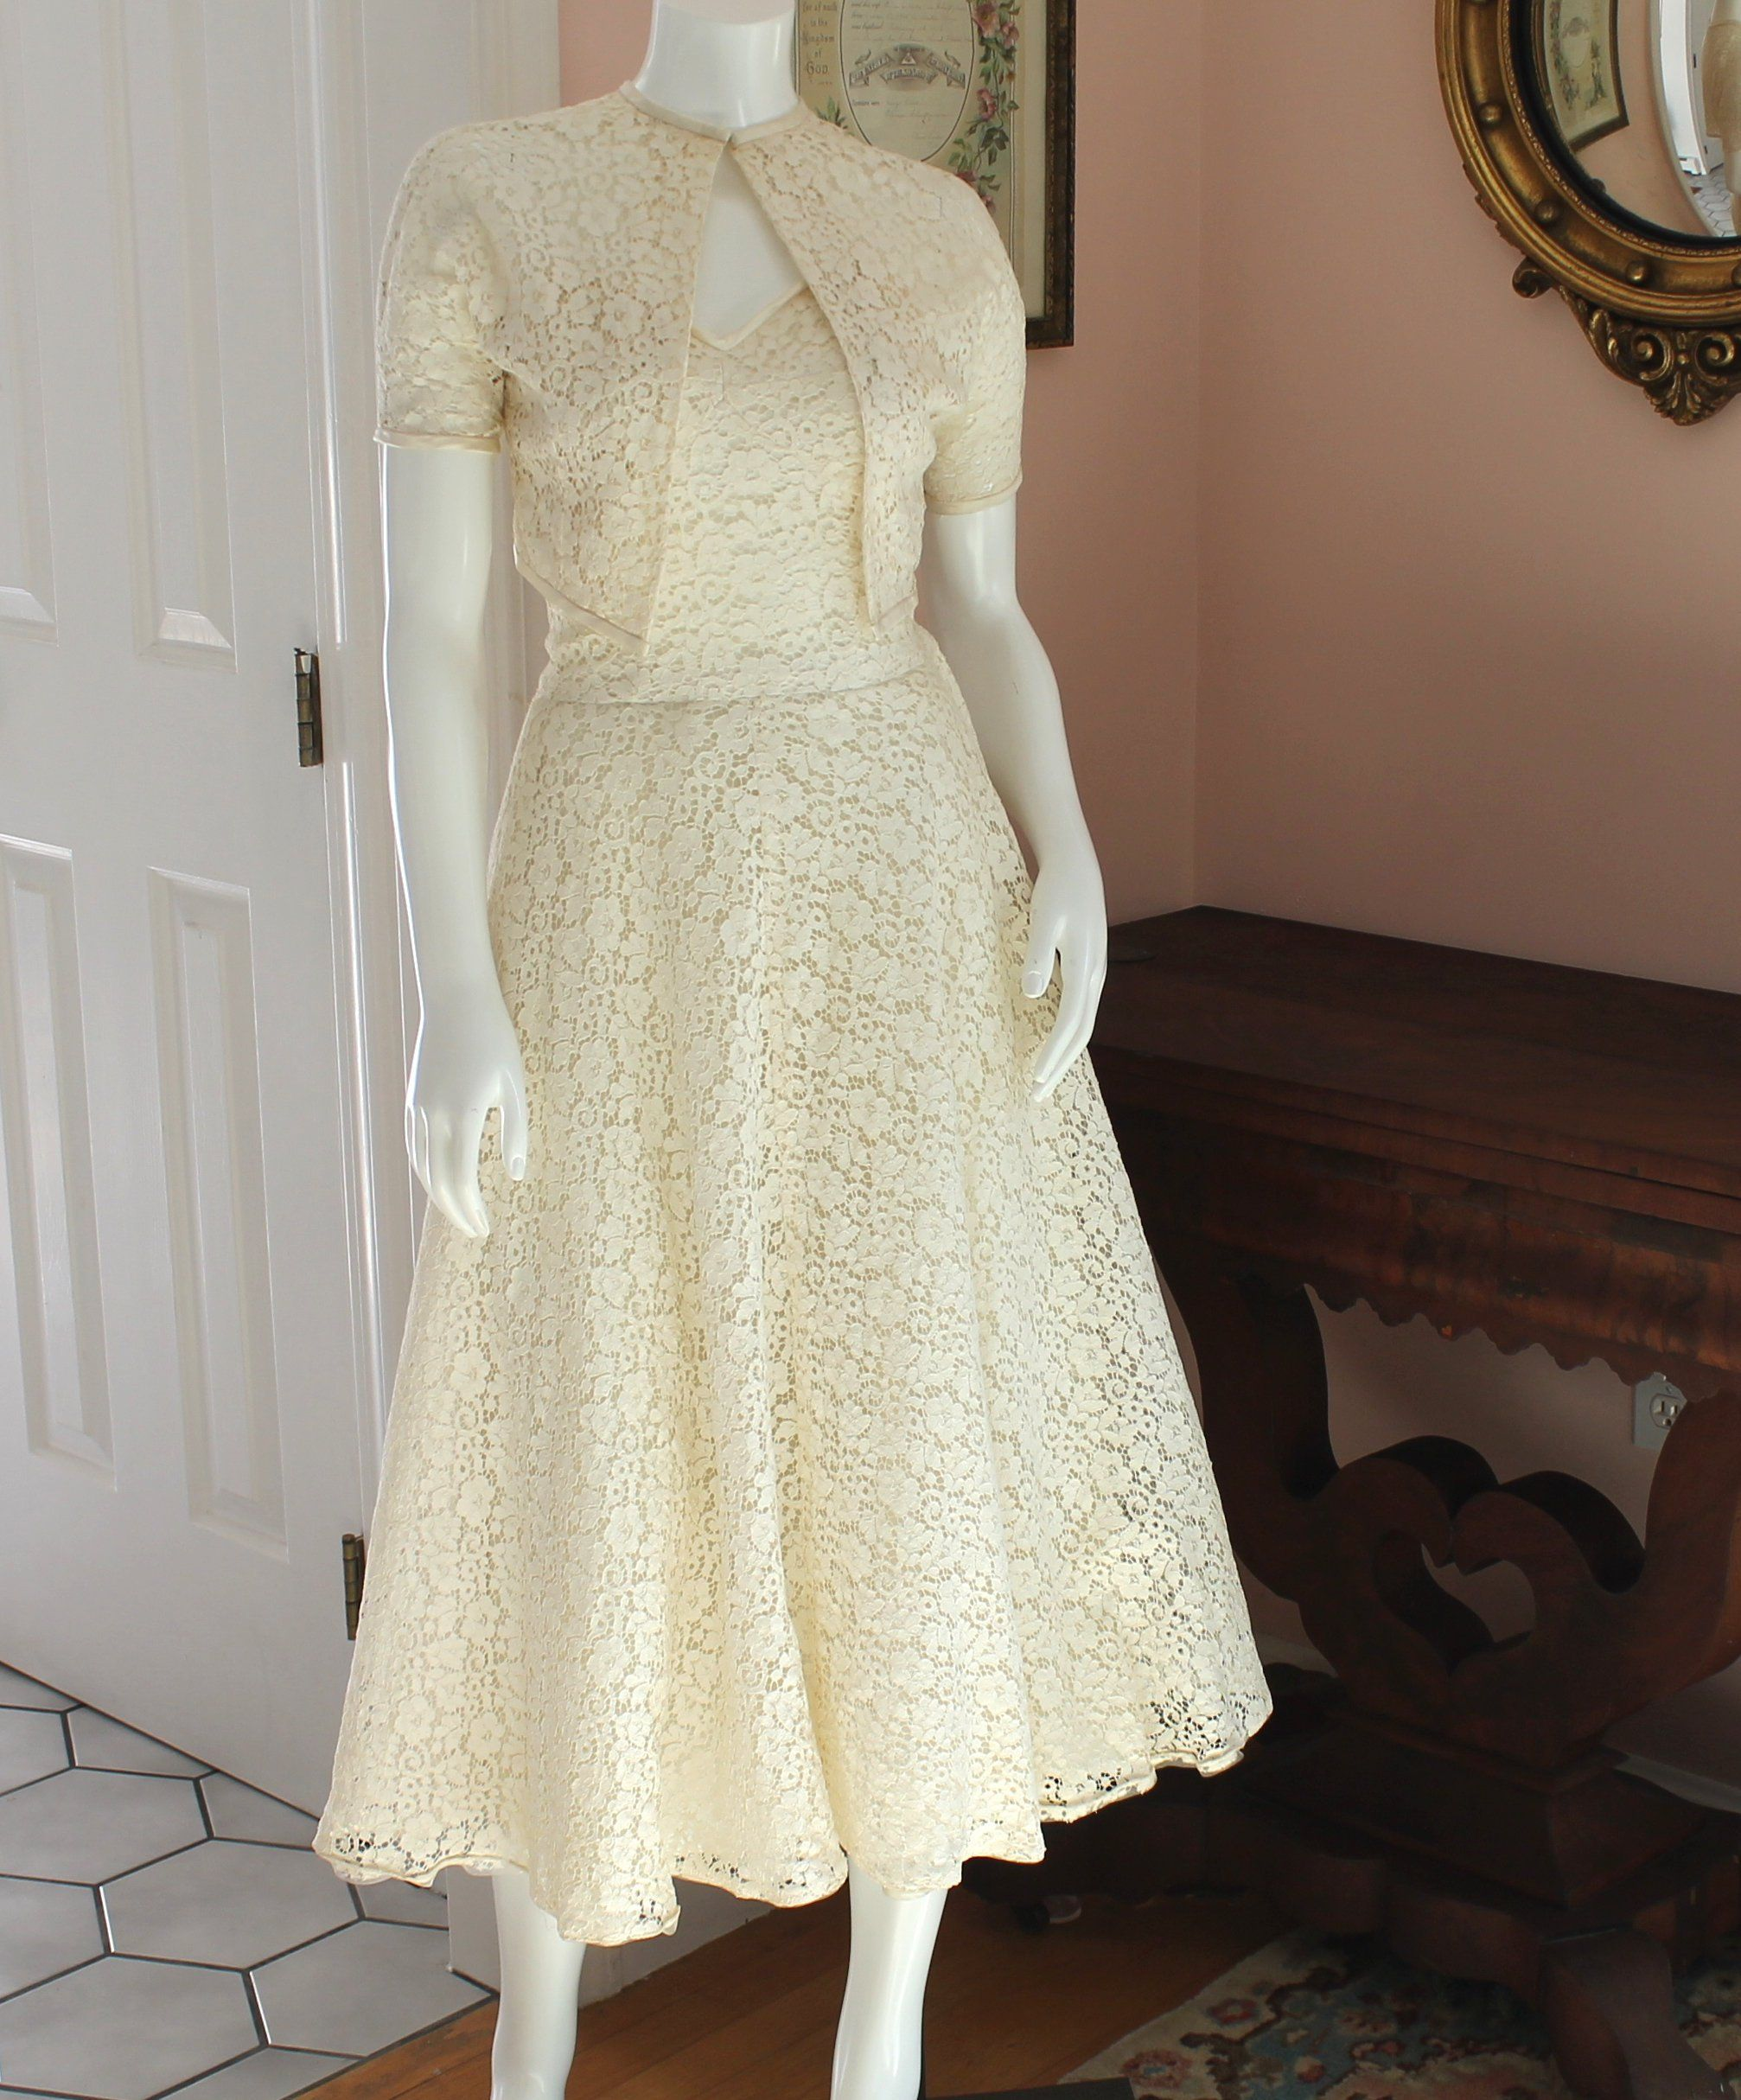 Vintage 1940s To 1950s Off White Floral Lace Strapless Dress Etsy Strapless Lace Dress Lace Strapless Renaissance Fair Dress [ 2429 x 2014 Pixel ]